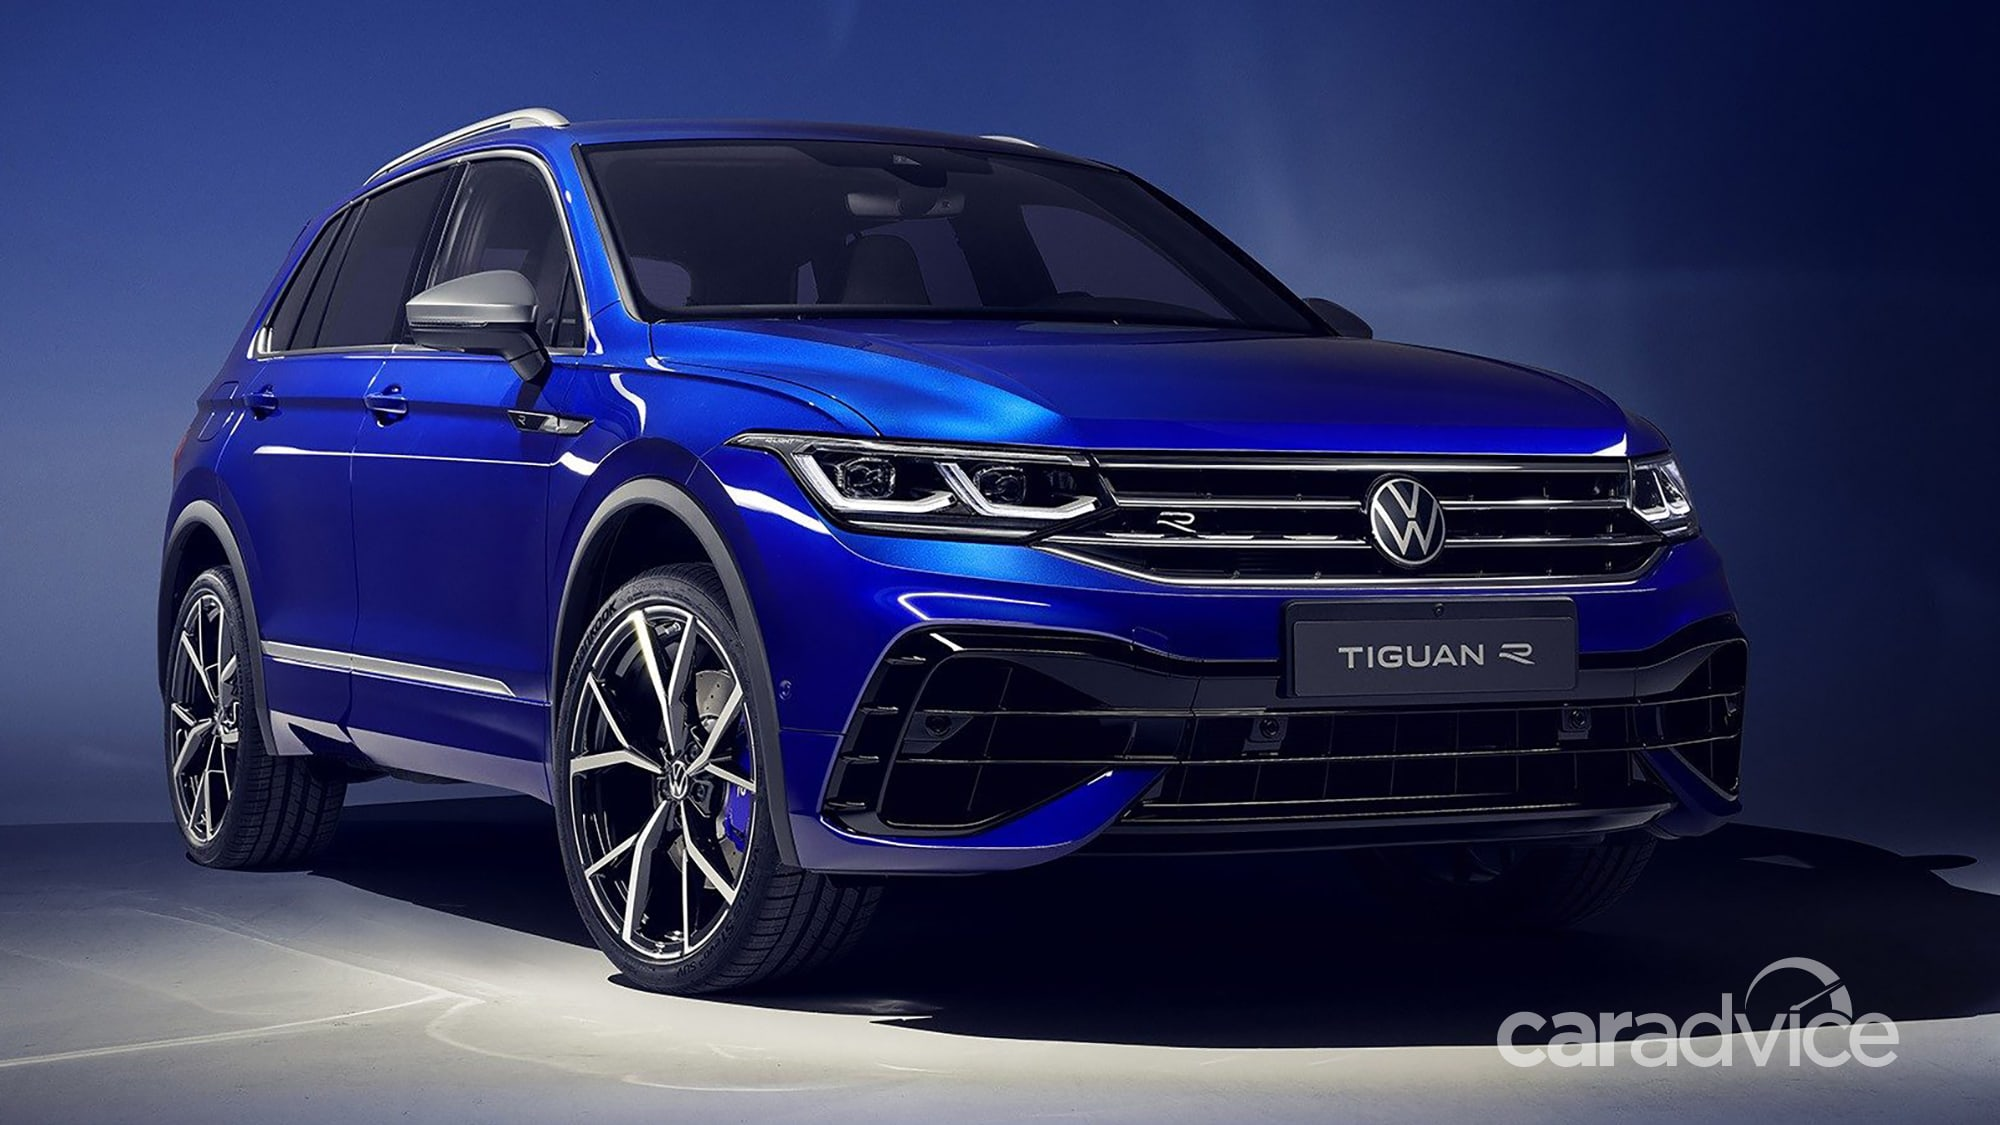 2021 Volkswagen Tiguan R revealed as flagship of new-look ...